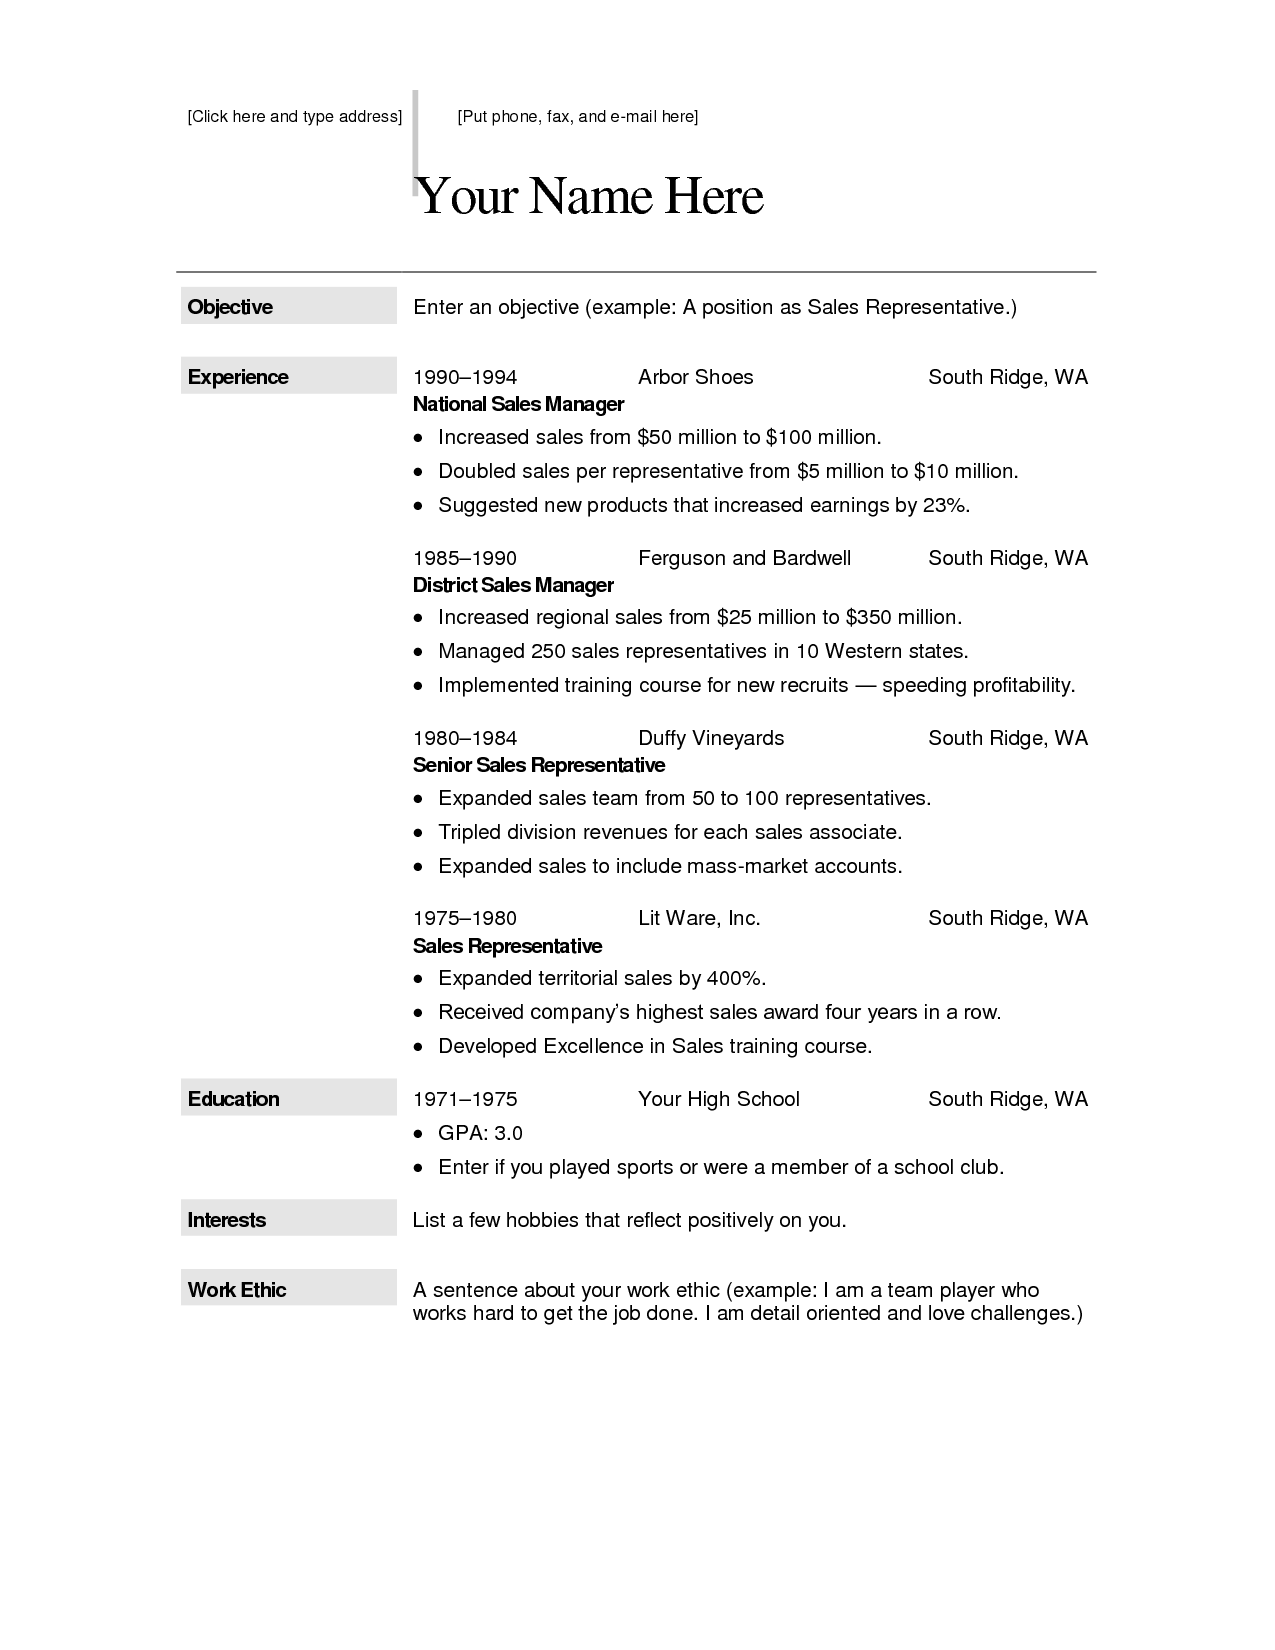 Academic Resume Template Free Creative Resume Templates For Macfree Creative Resume